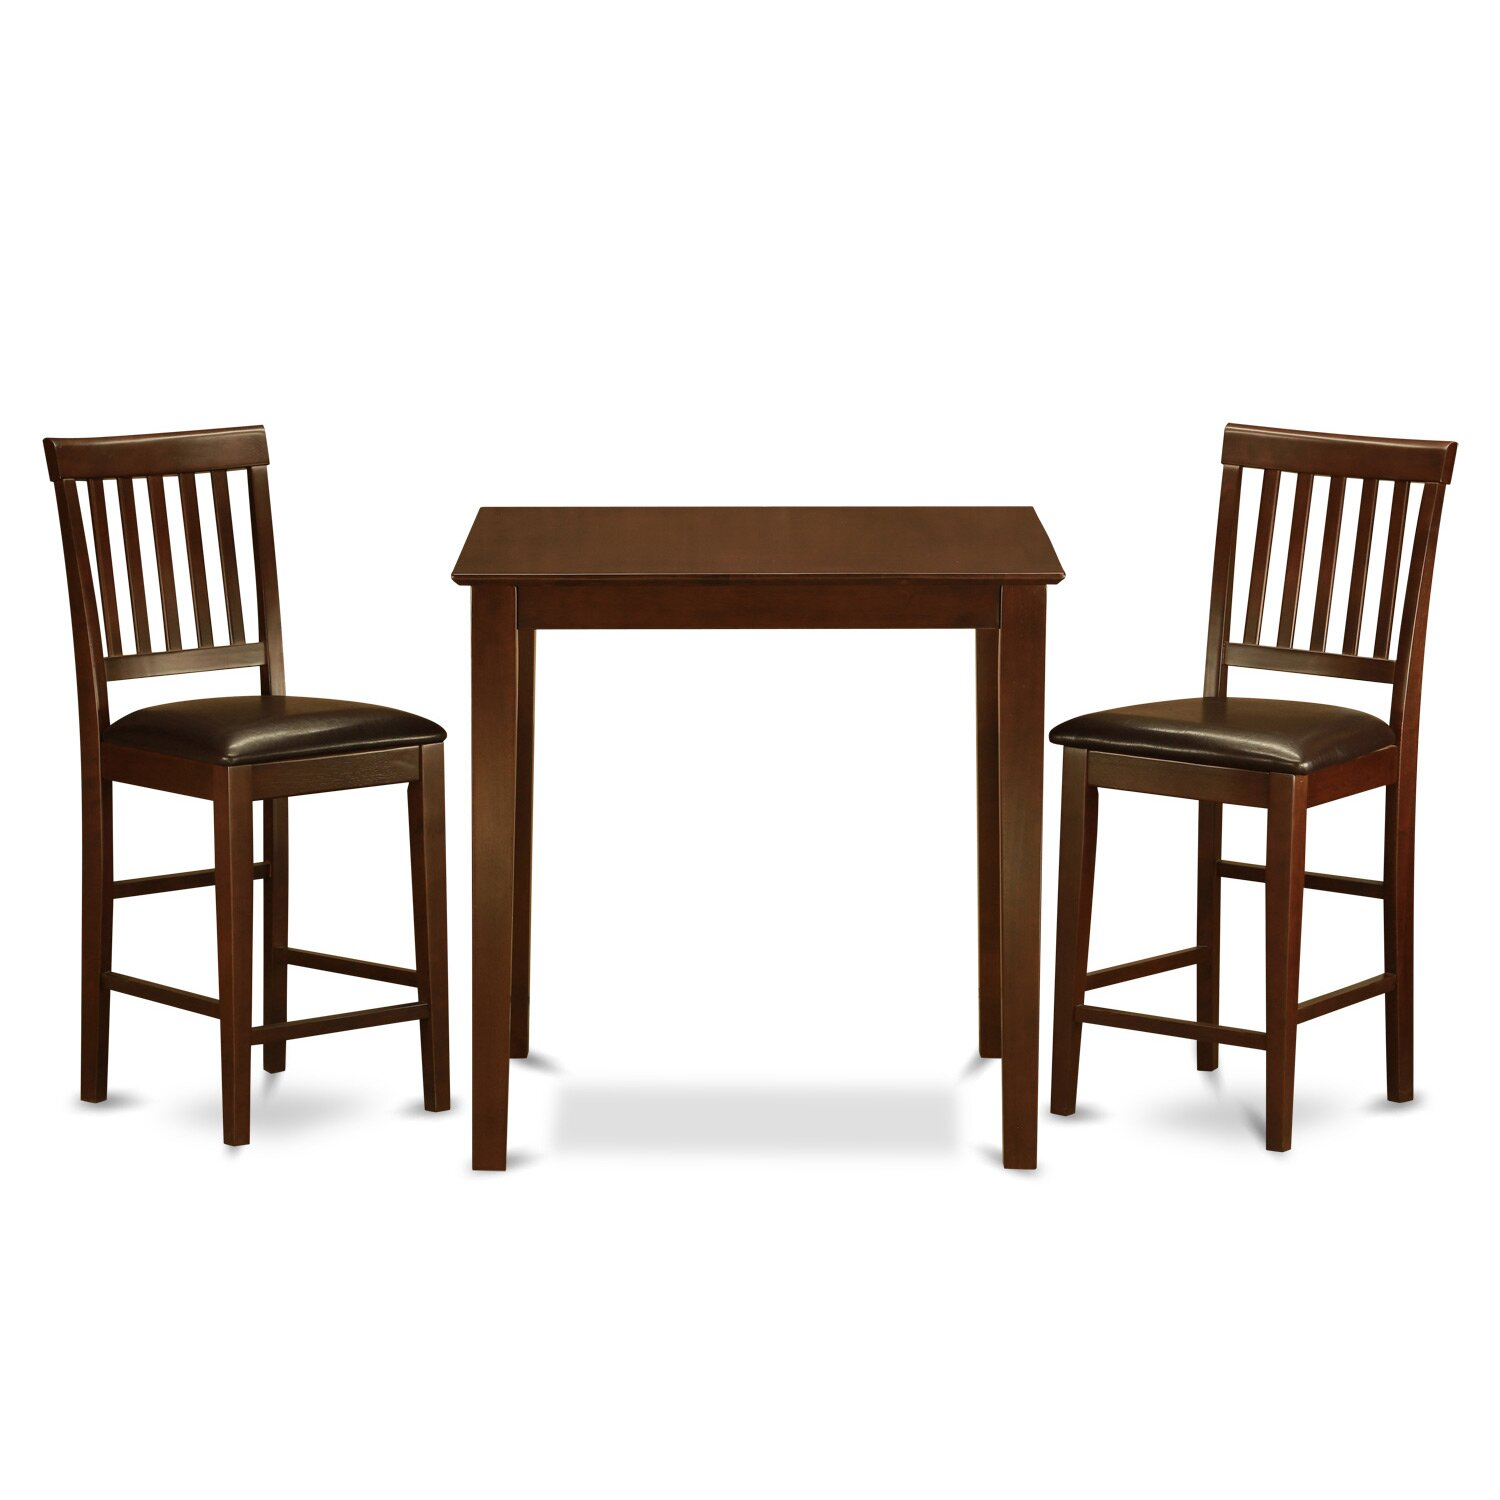 wooden importers vernon 3 piece counter height dining set reviews wayfair. Black Bedroom Furniture Sets. Home Design Ideas